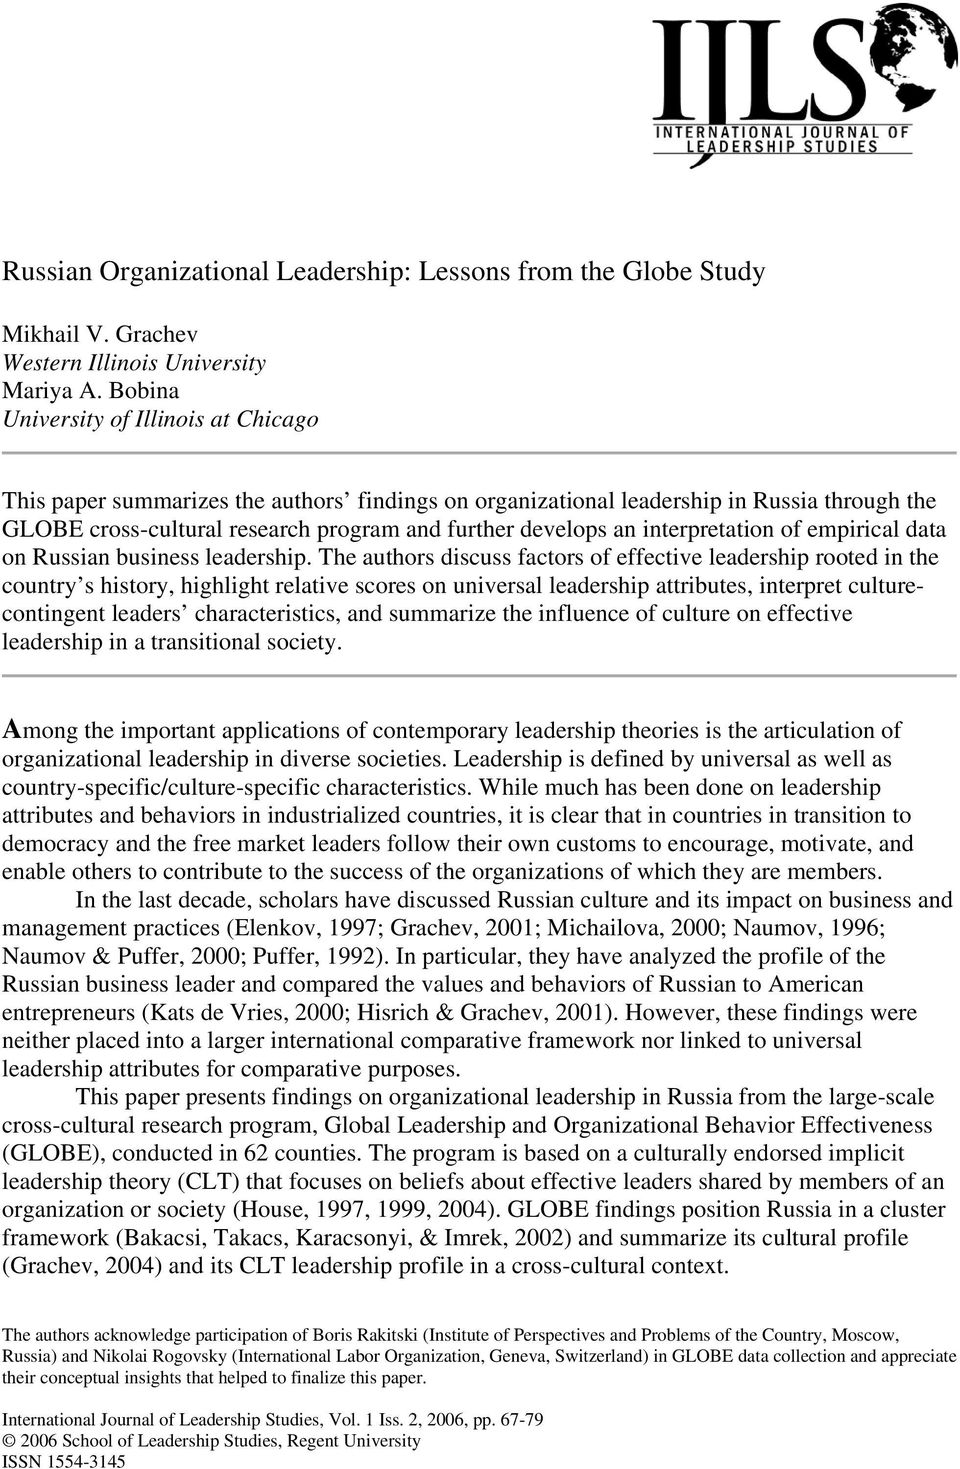 Russian Organizational Leadership: Lessons from the Globe